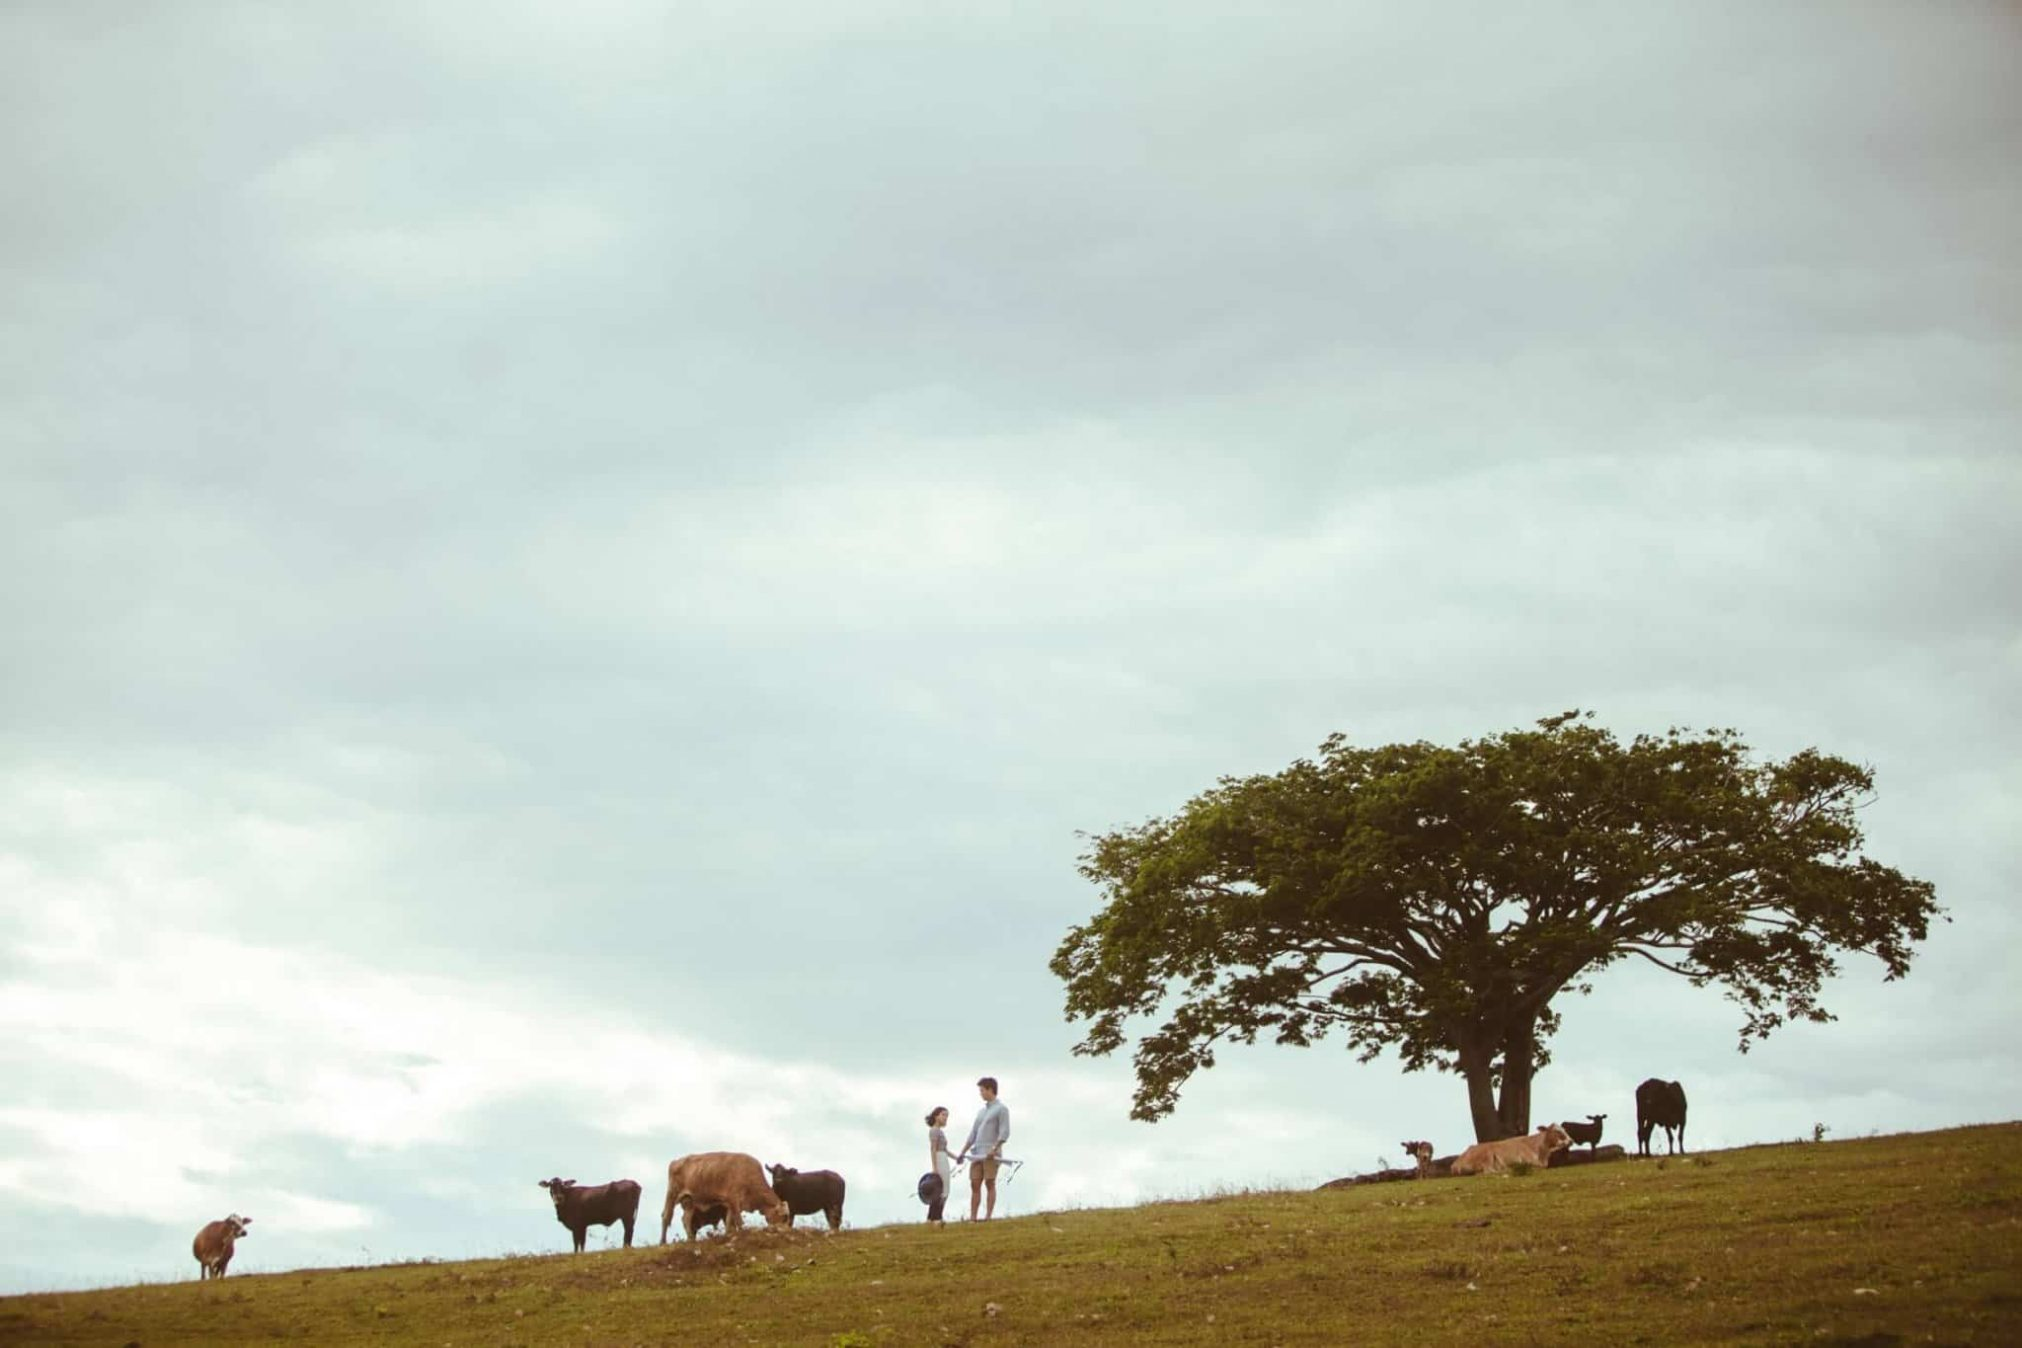 Malaysia based destination wedding photographer kuala lumpur prewedding cows big green tree couple